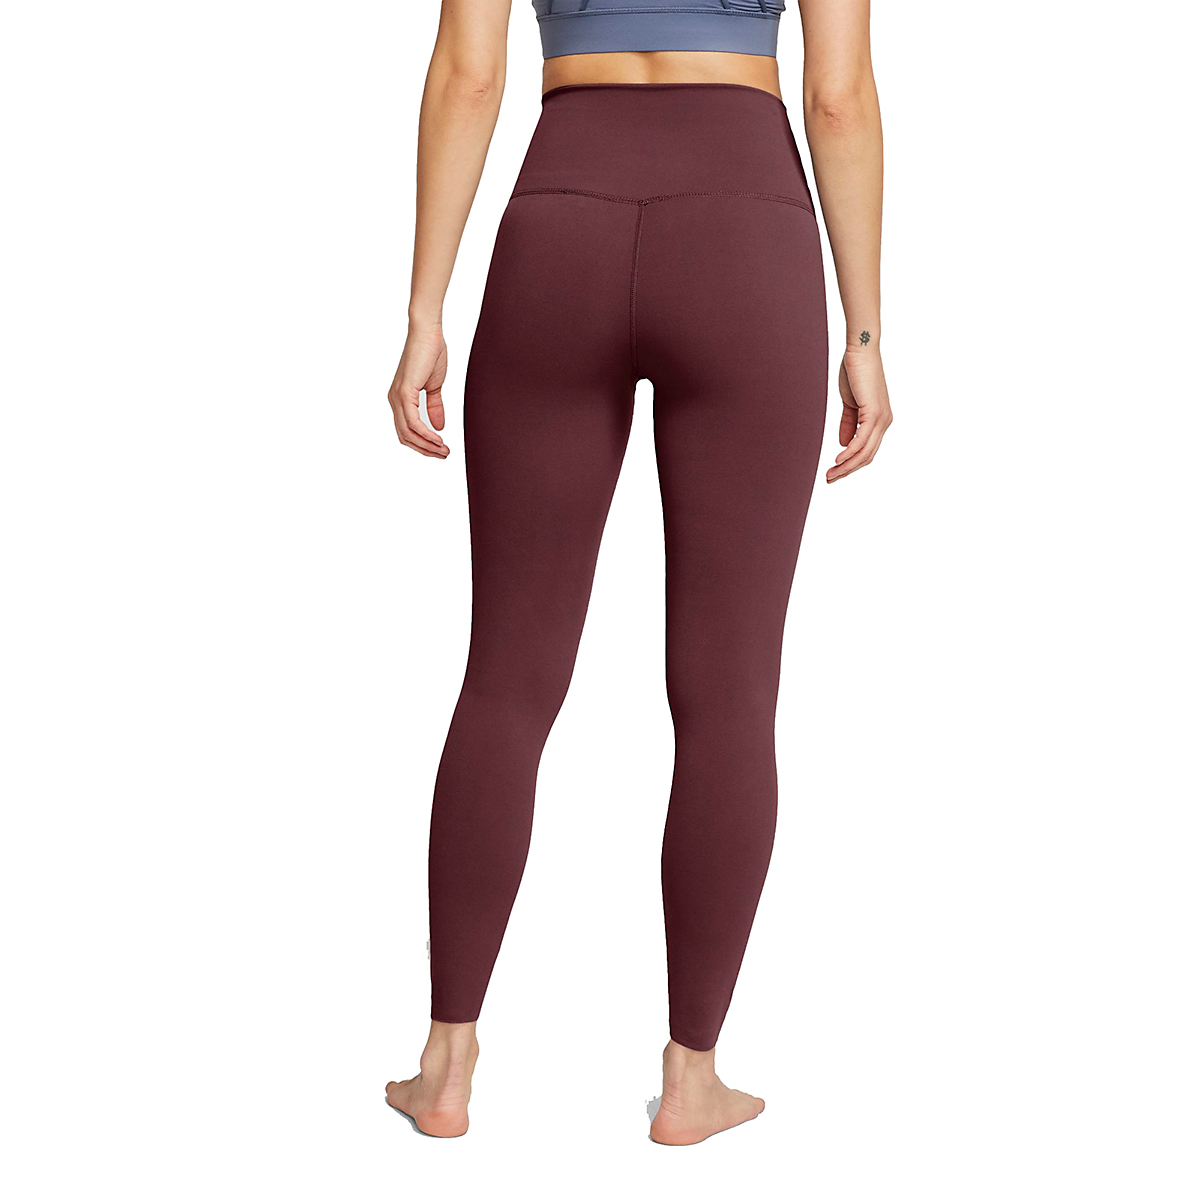 Women's Nike Luxe 7/8 Tights, , large, image 2